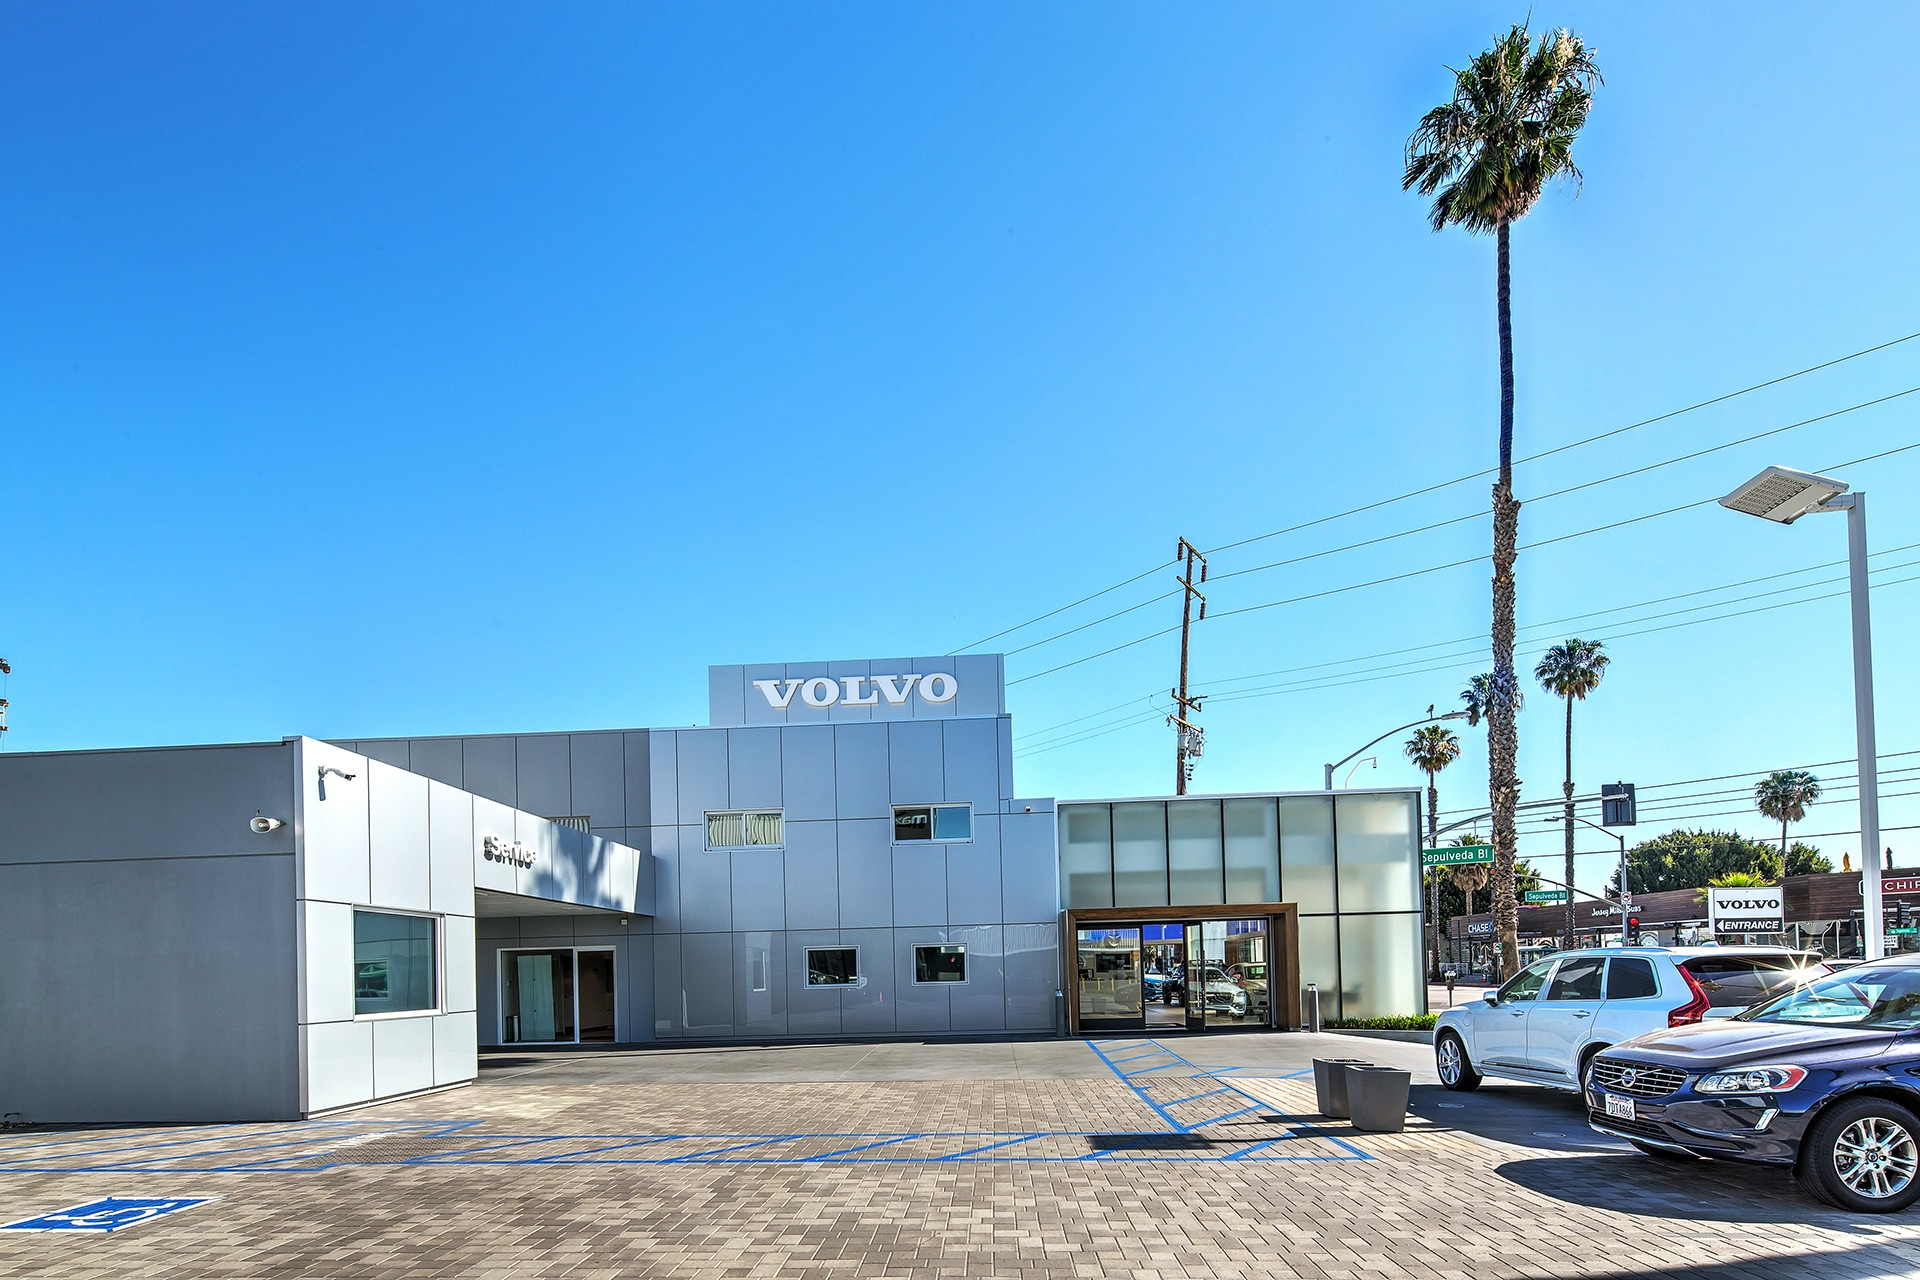 There is valet parking available at Culver City Volvo Cars